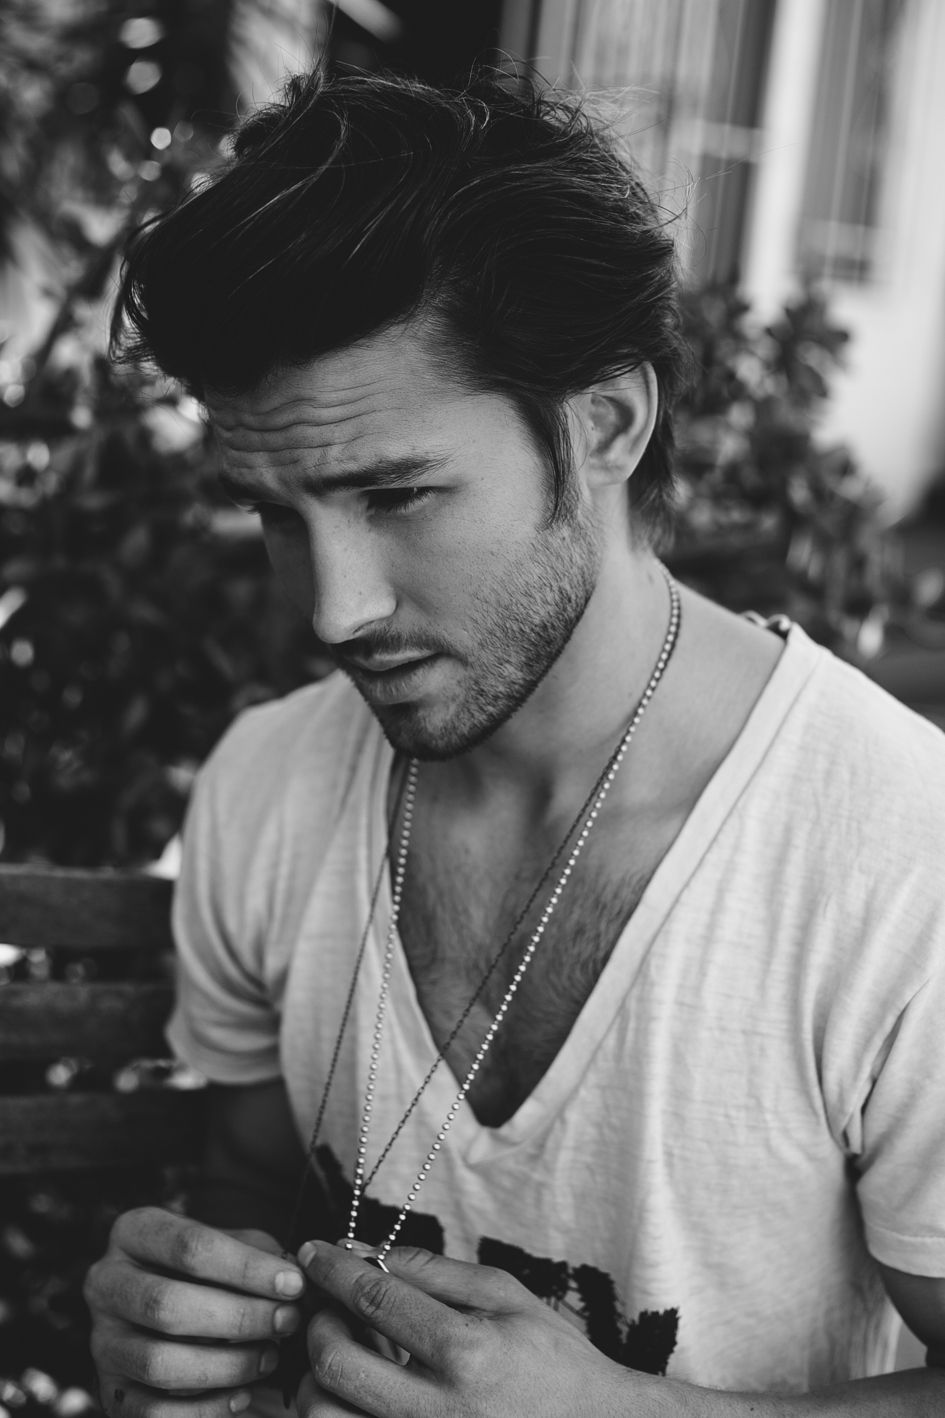 David john craig men pinterest guy handsome and hot guys